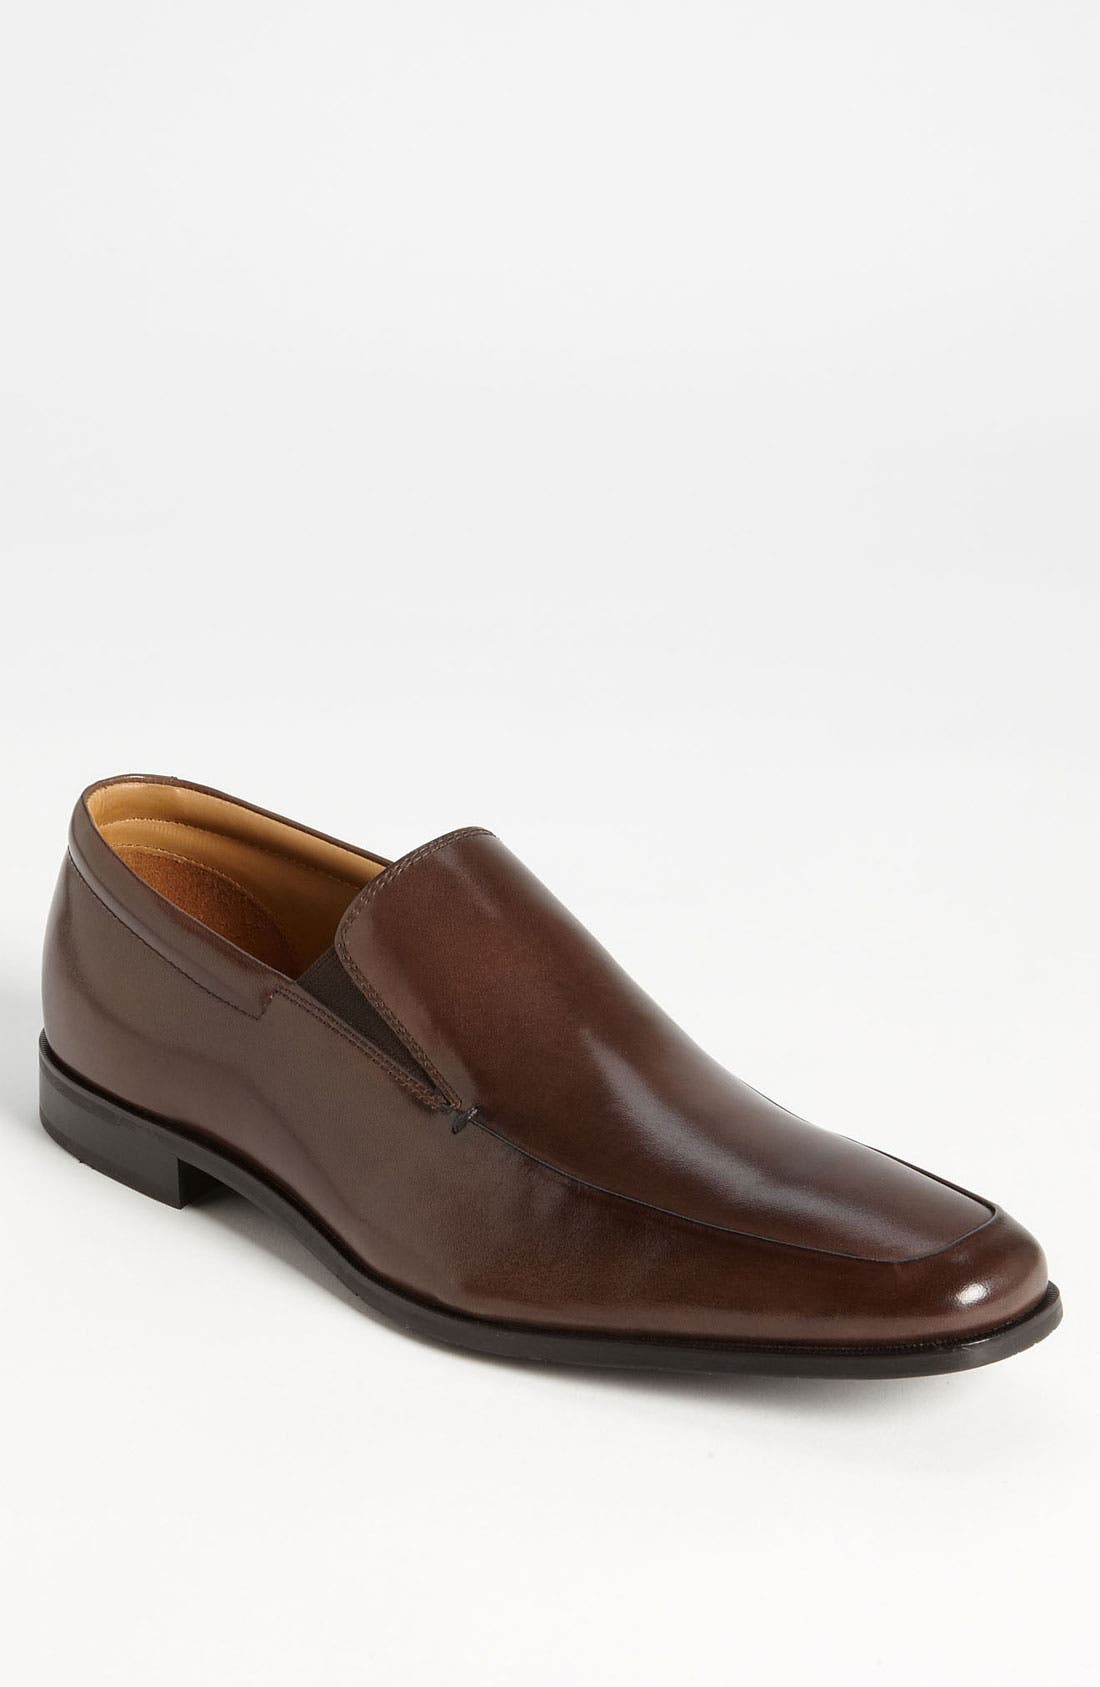 'Elliot' Venetian Loafer,                             Main thumbnail 1, color,                             BROWN LEATHER